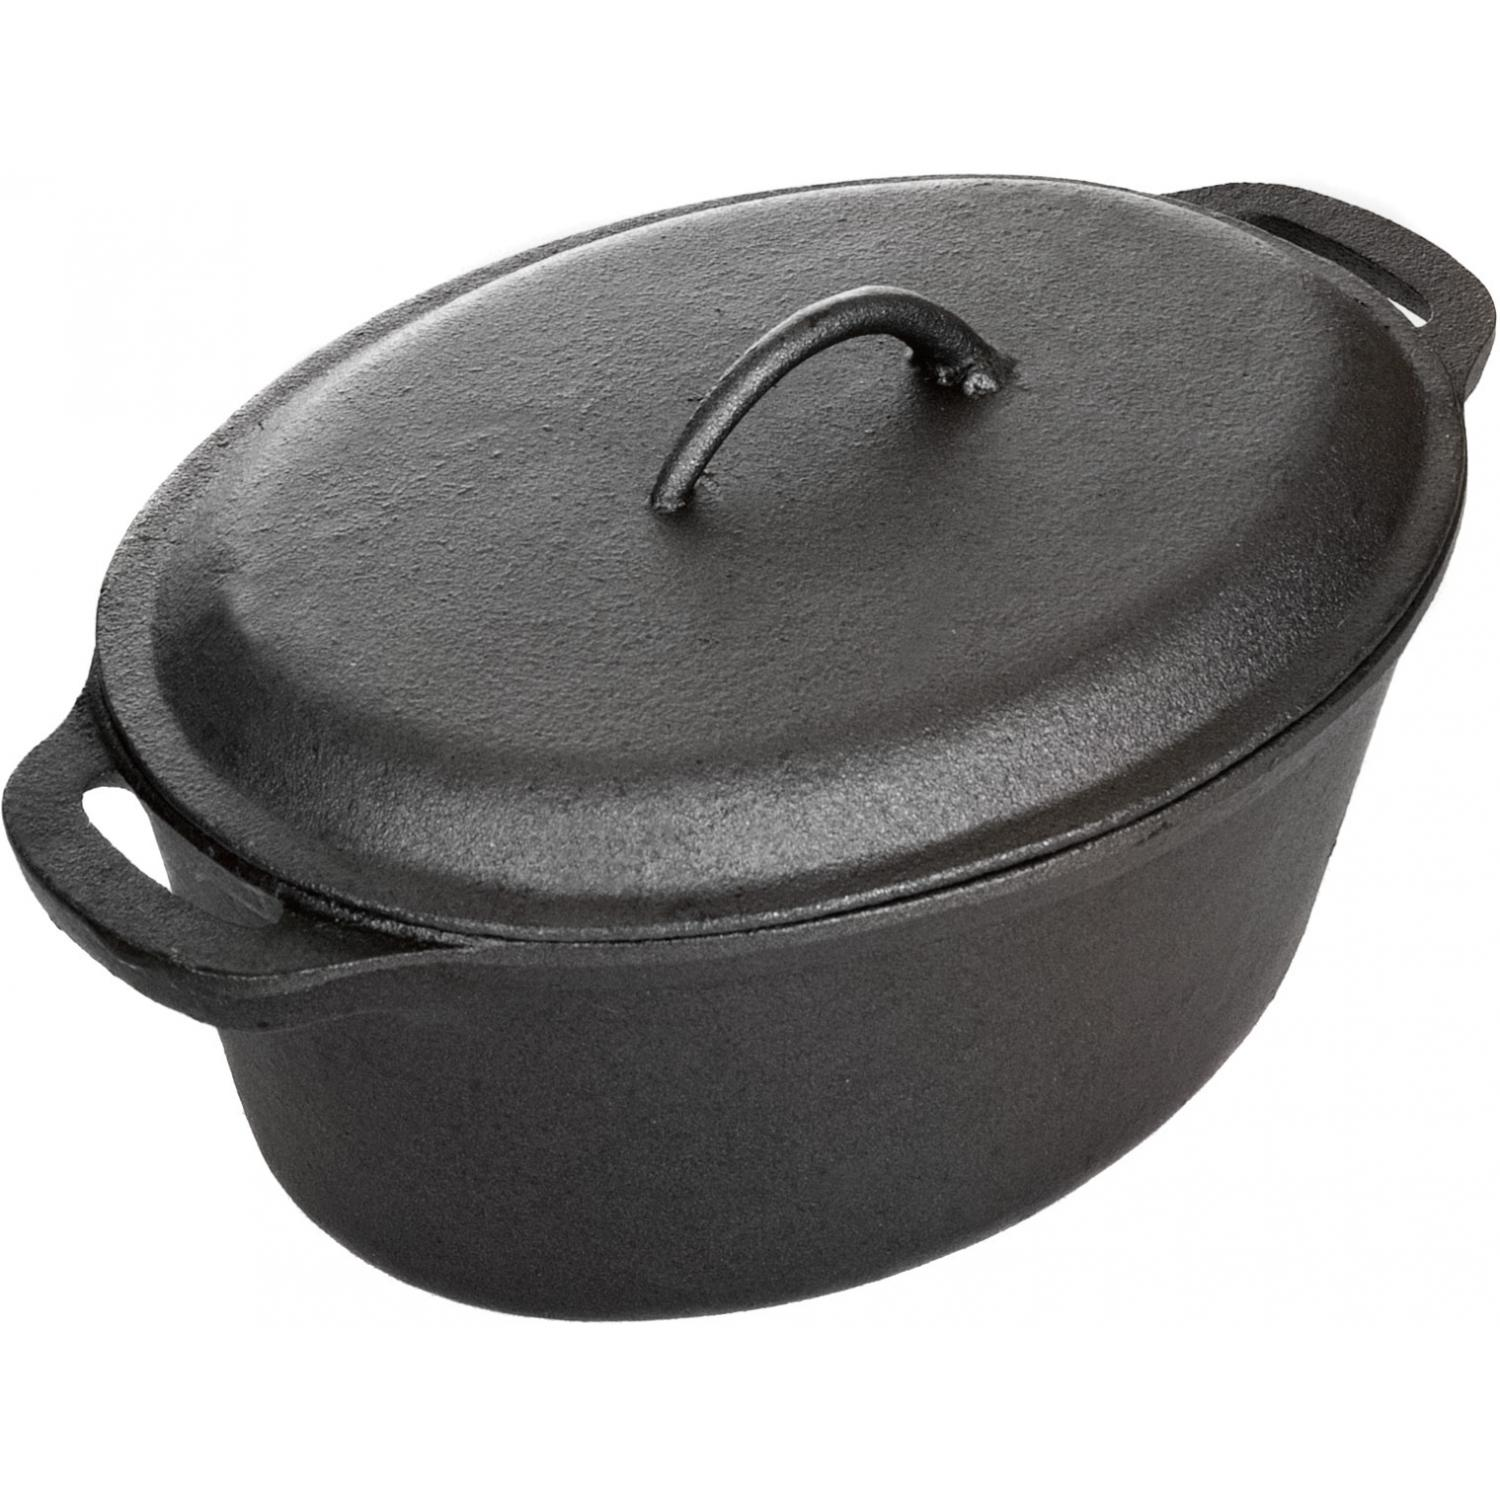 Picture of Cajun Cookware Pots 5 Quart Cast Iron Casserole Pot